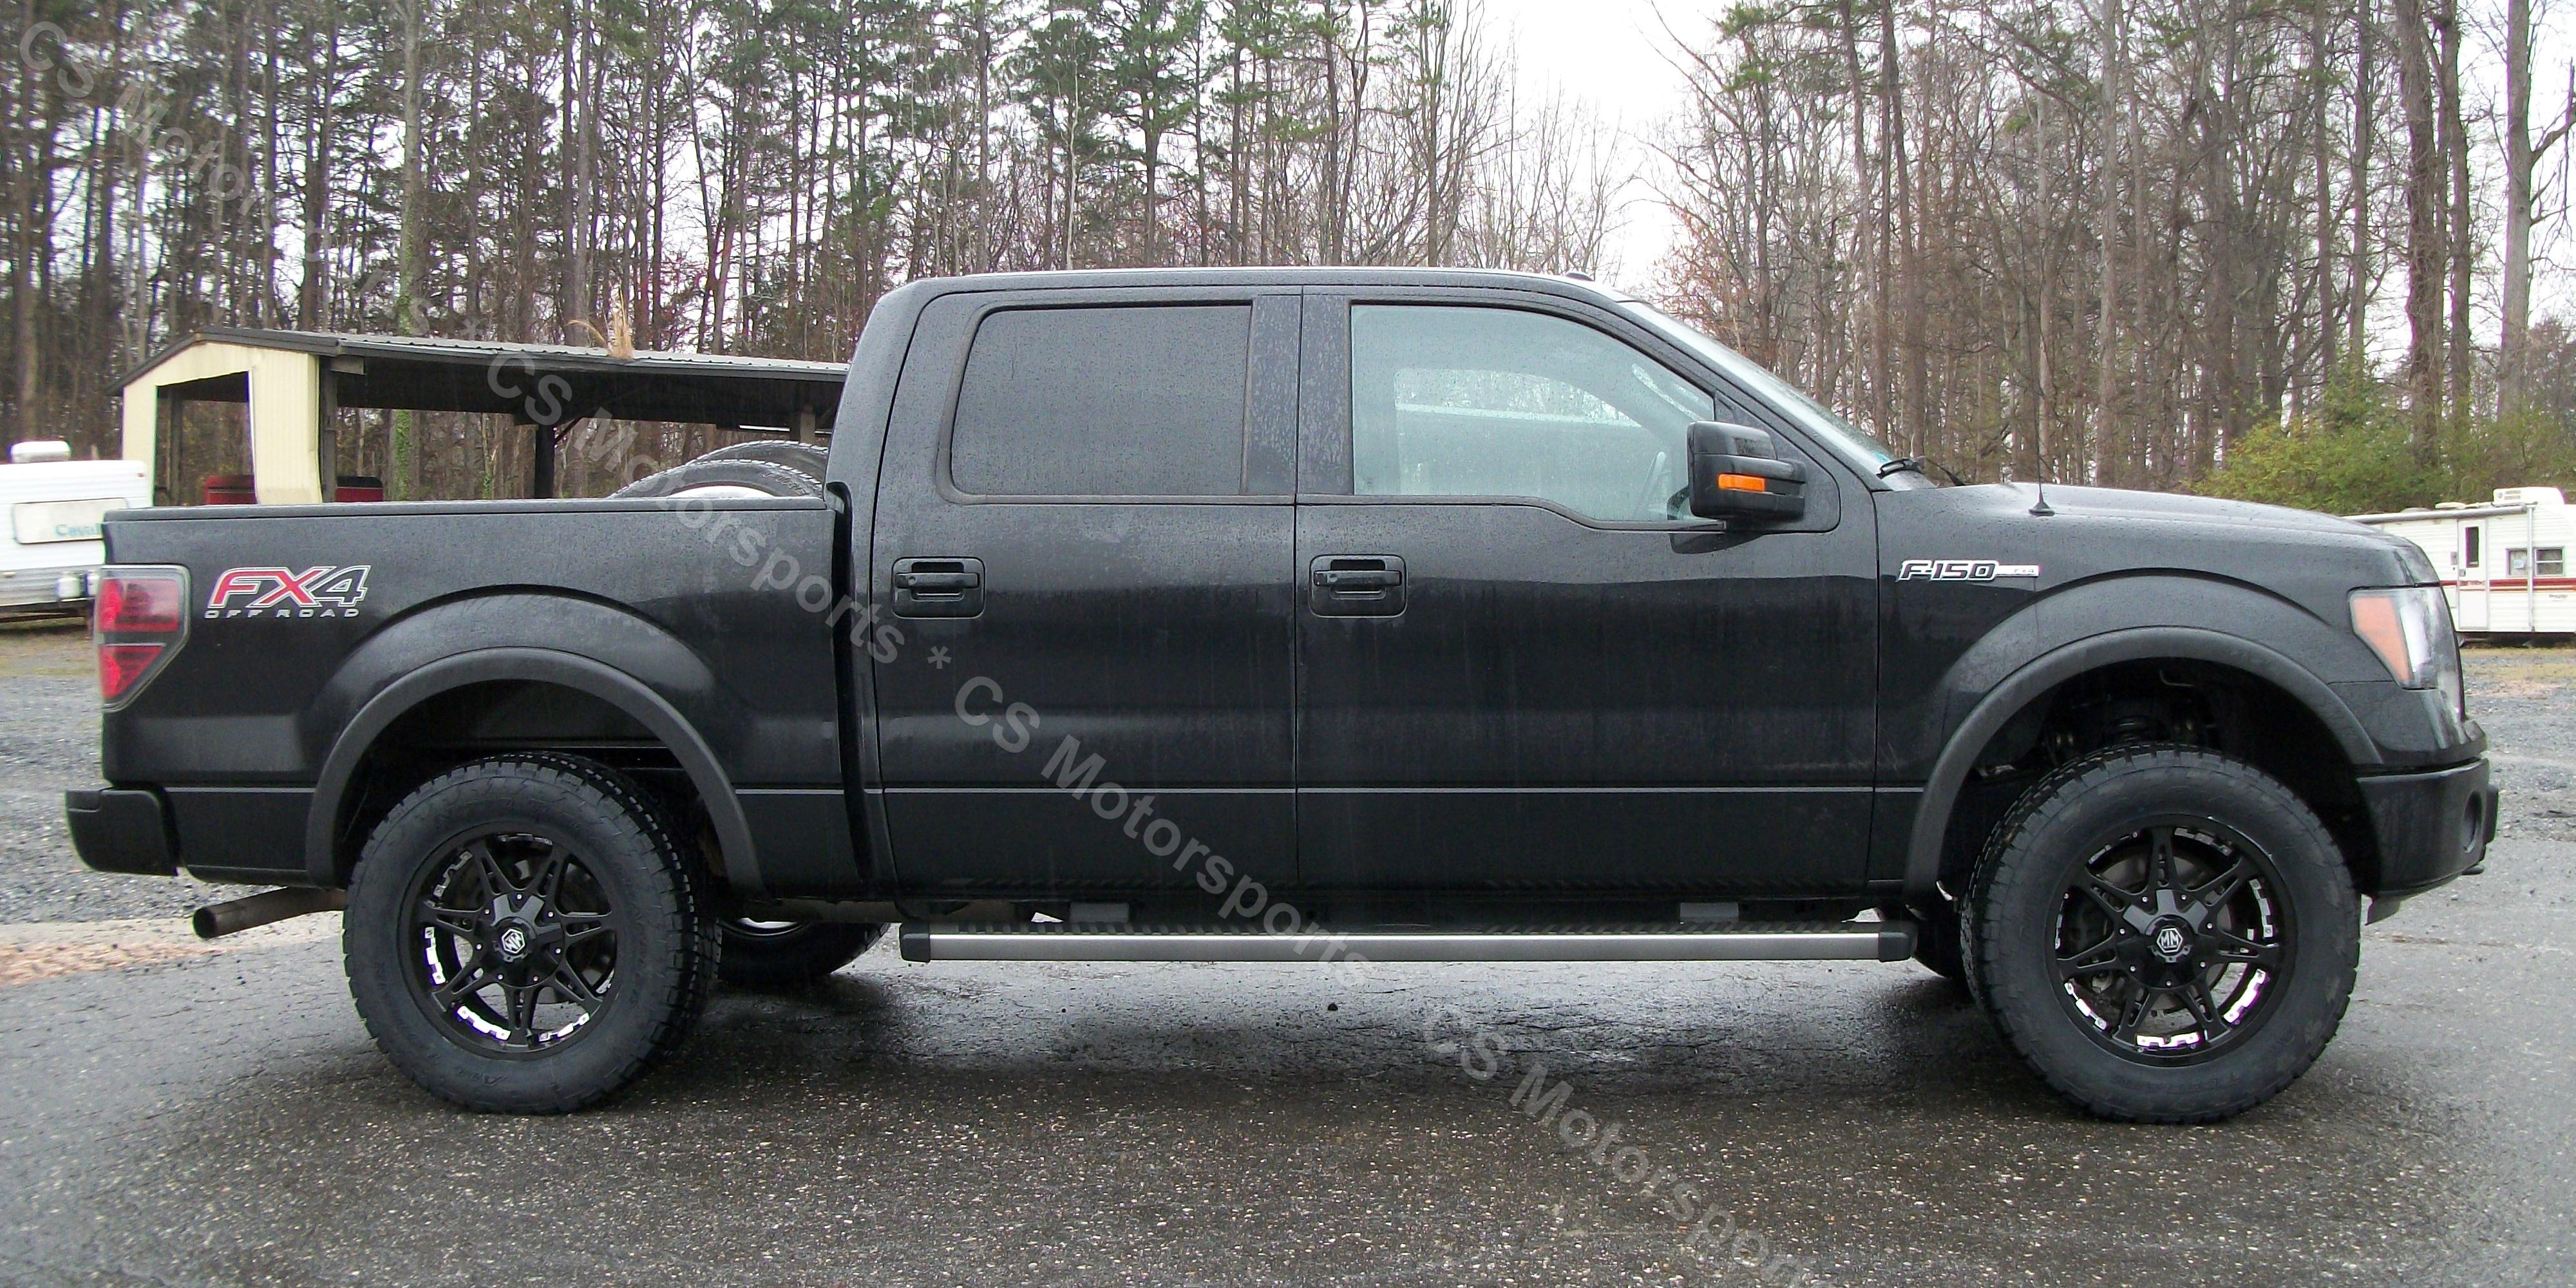 2012 Ford F-150 FX4 Off-Road